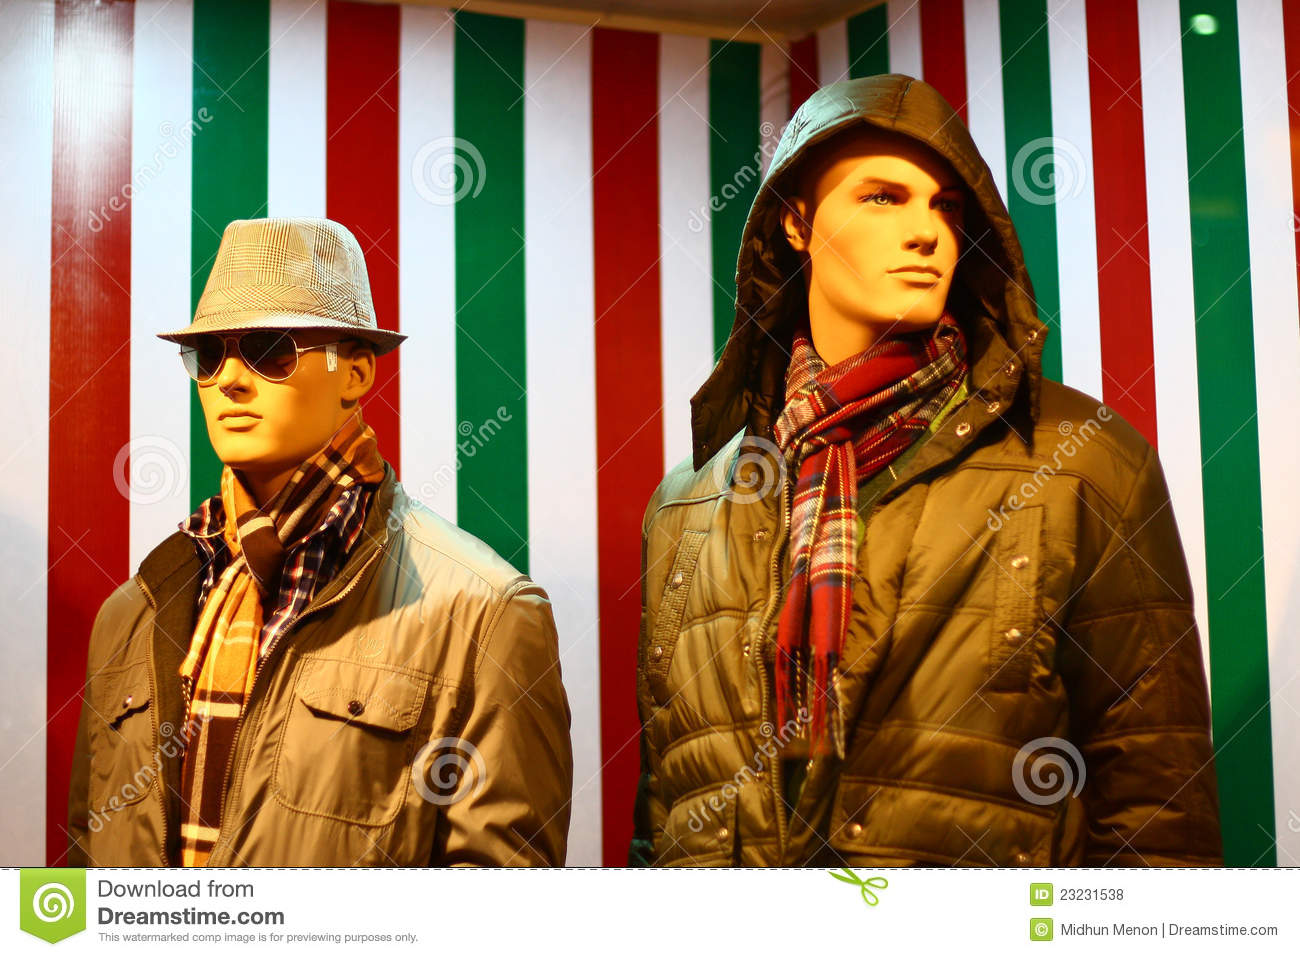 Clothes stores. Best clothing stores for men